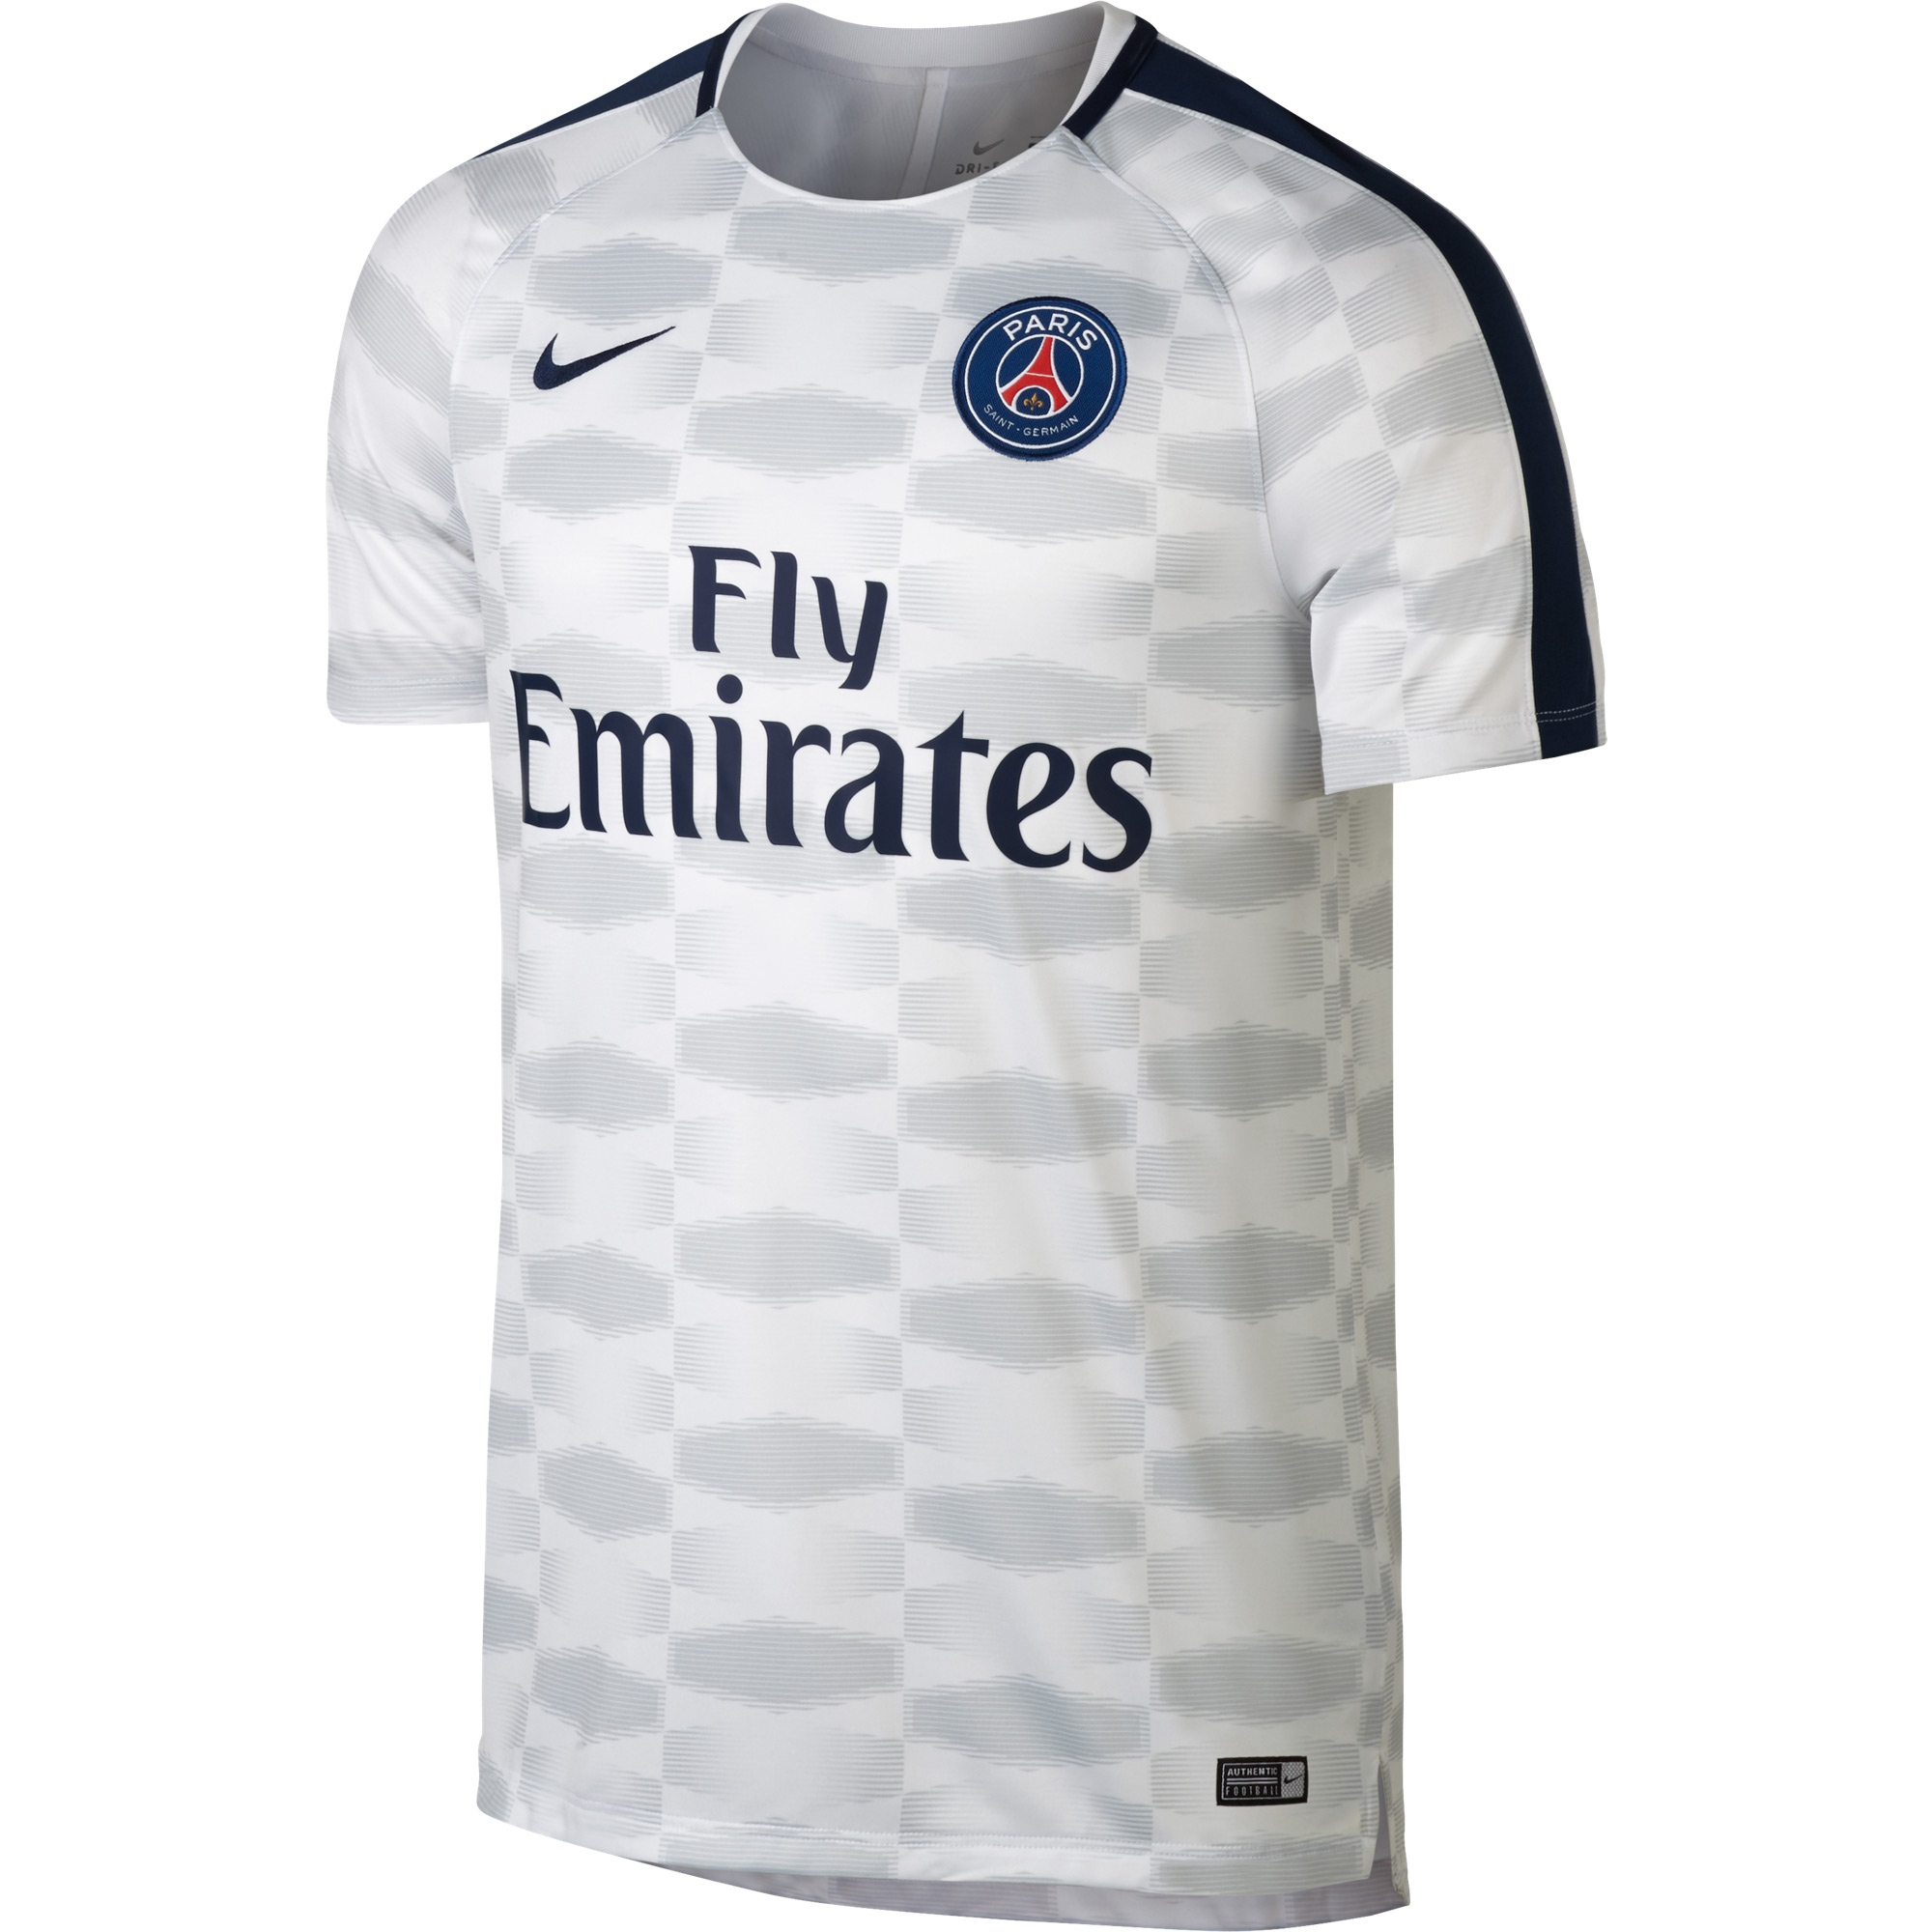 PSG GX Squad Top 2017 / 2018 - White - S